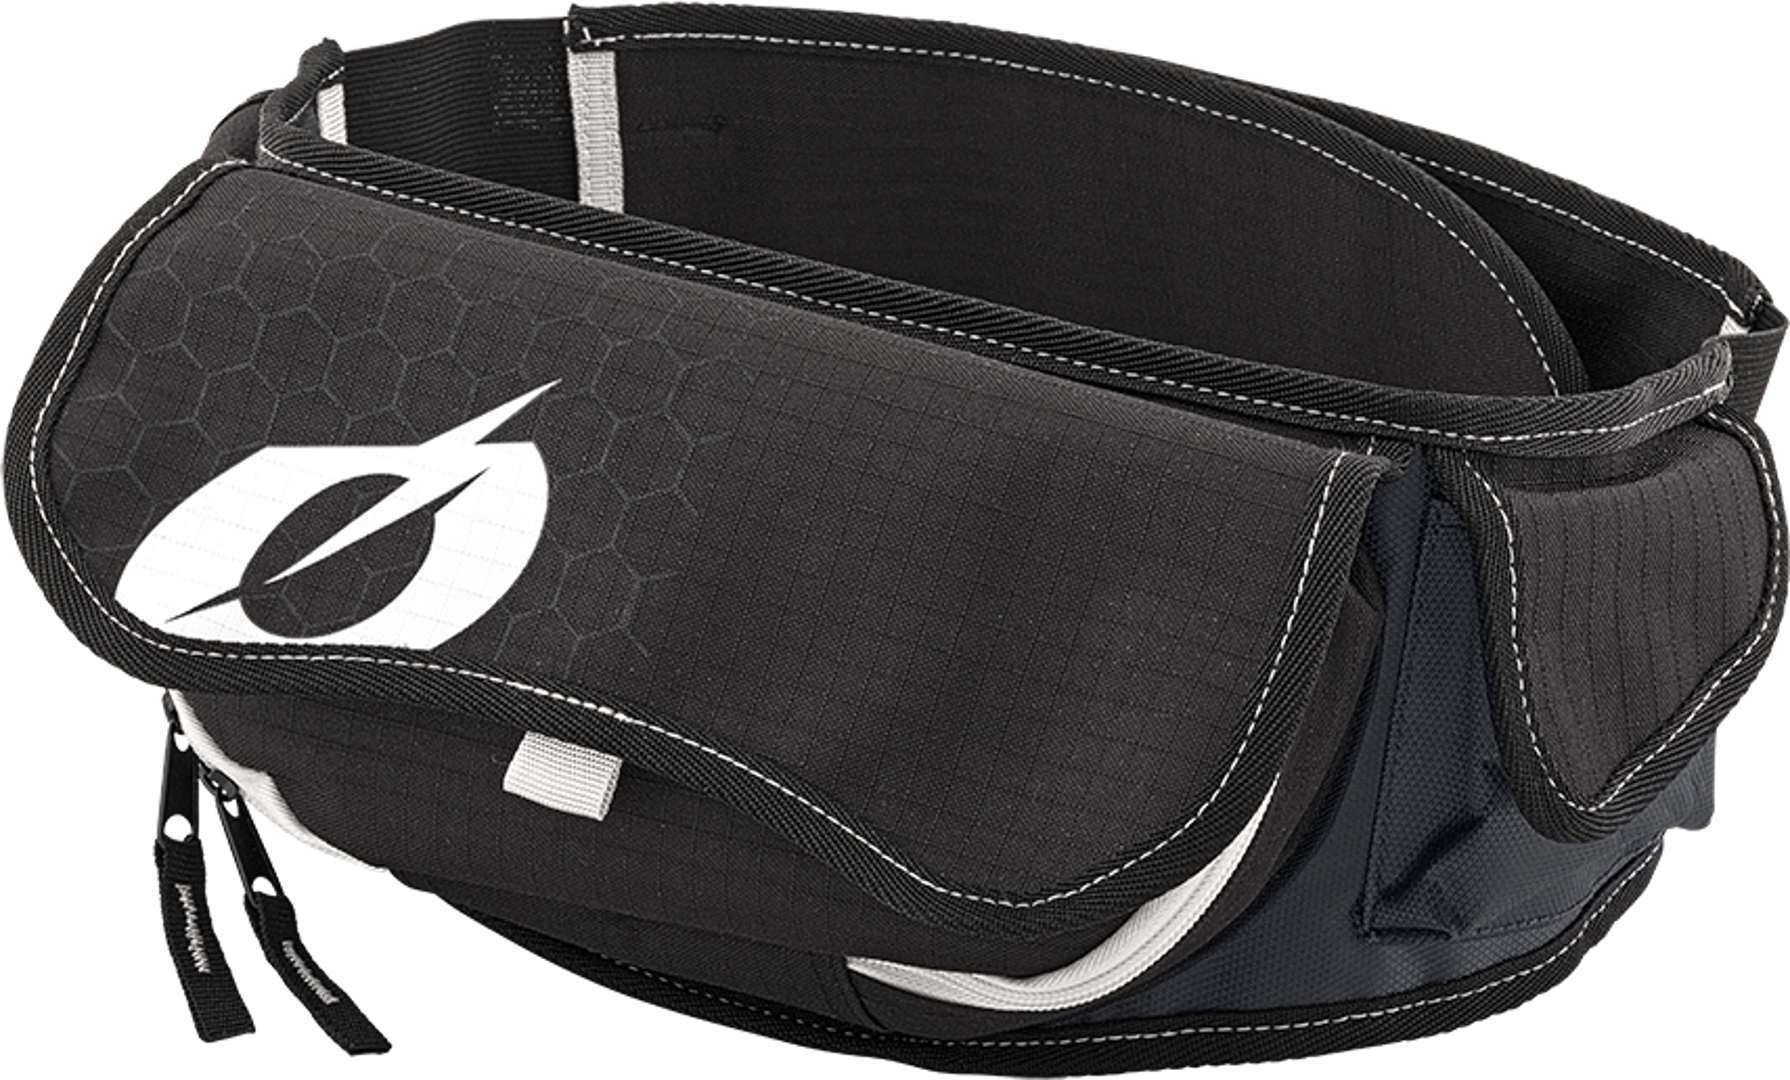 Oneal Toolbag Waist Bag  - Size: One Size